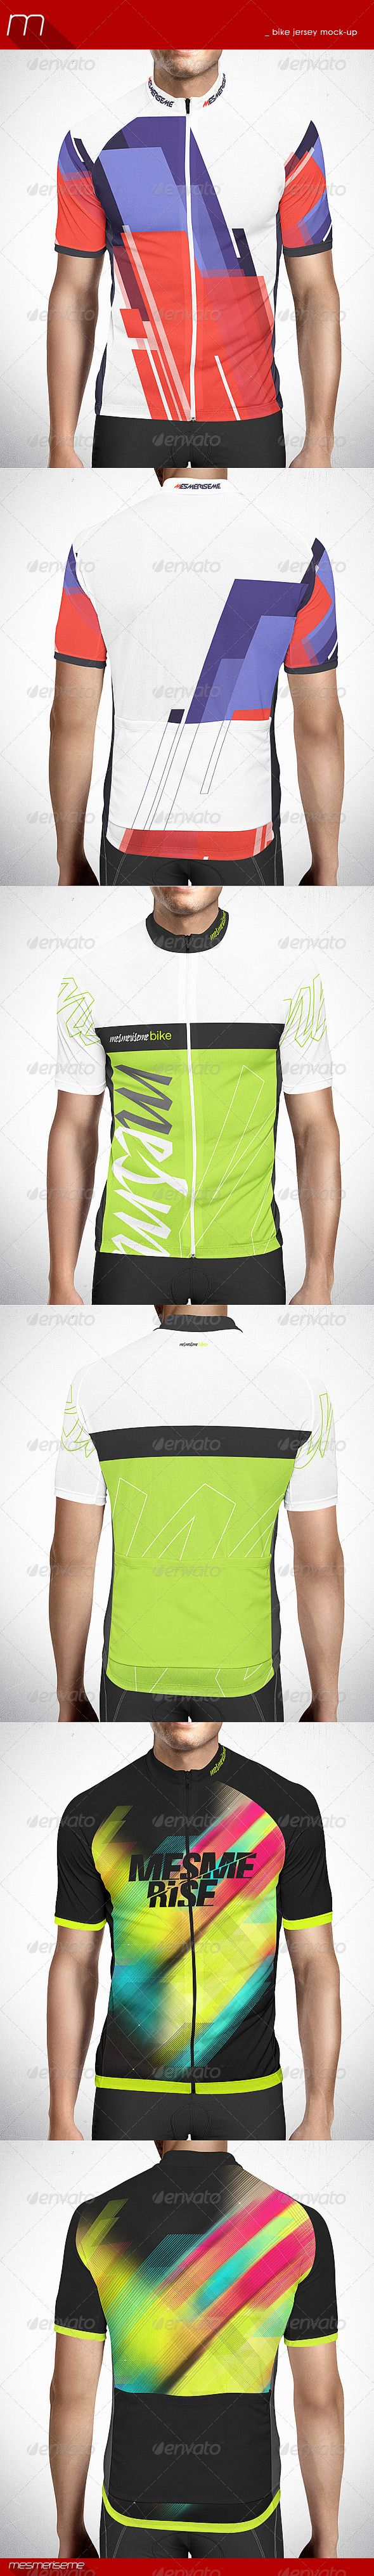 Download Bike Jersey Mock Up Ad Advertisment Bicycle Bike Biker Competition Cycle Cyclist Elastic Logo Marathon Mock Sports Design Bike Jersey Biking Outfit